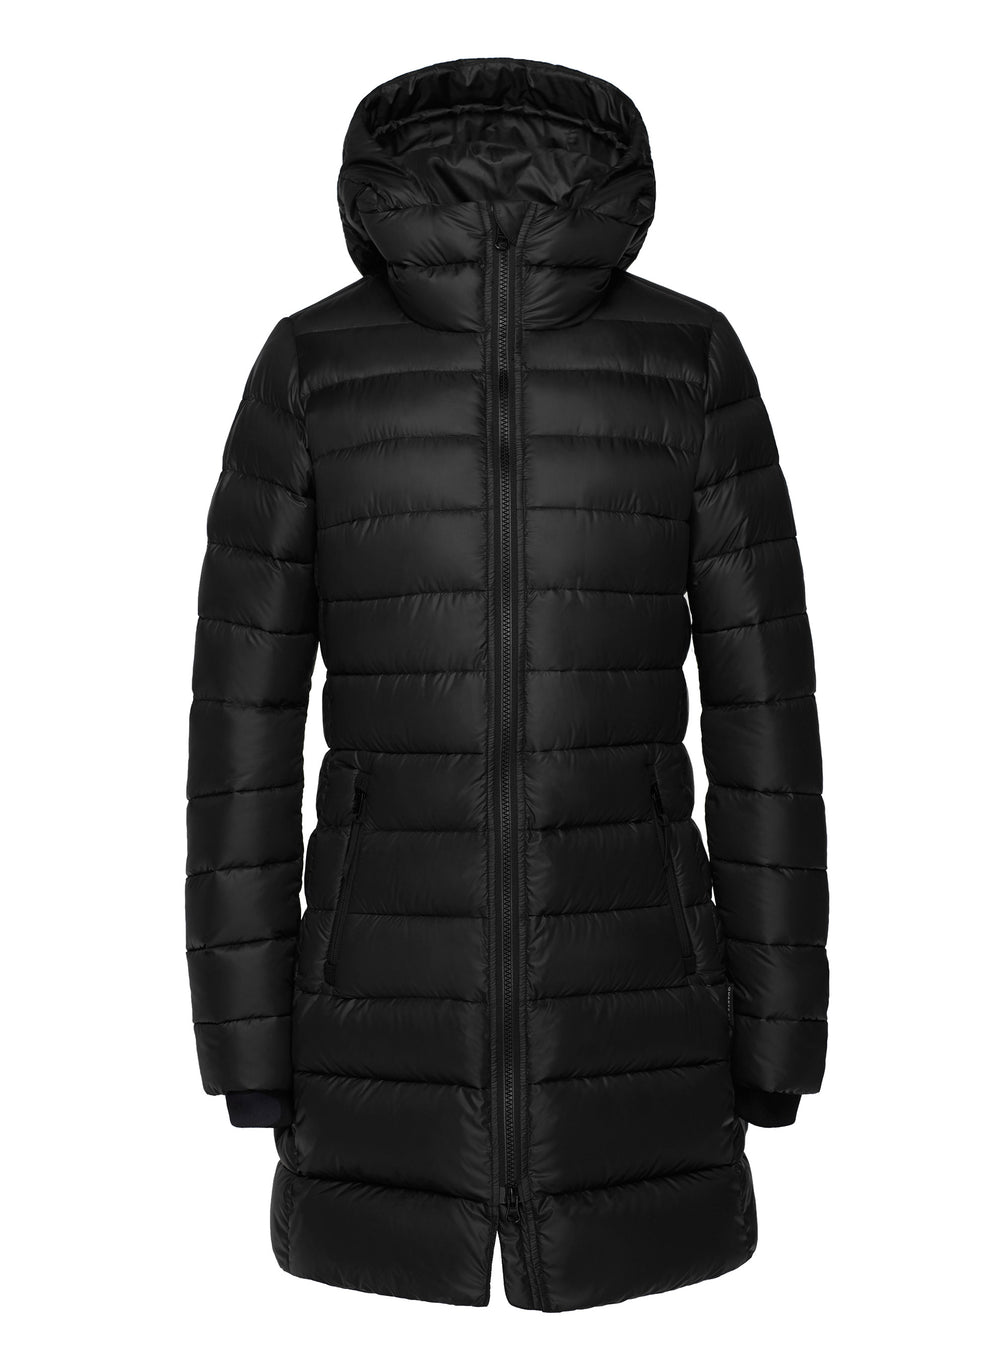 Quartz Co. Lausanne Jacket - Women's